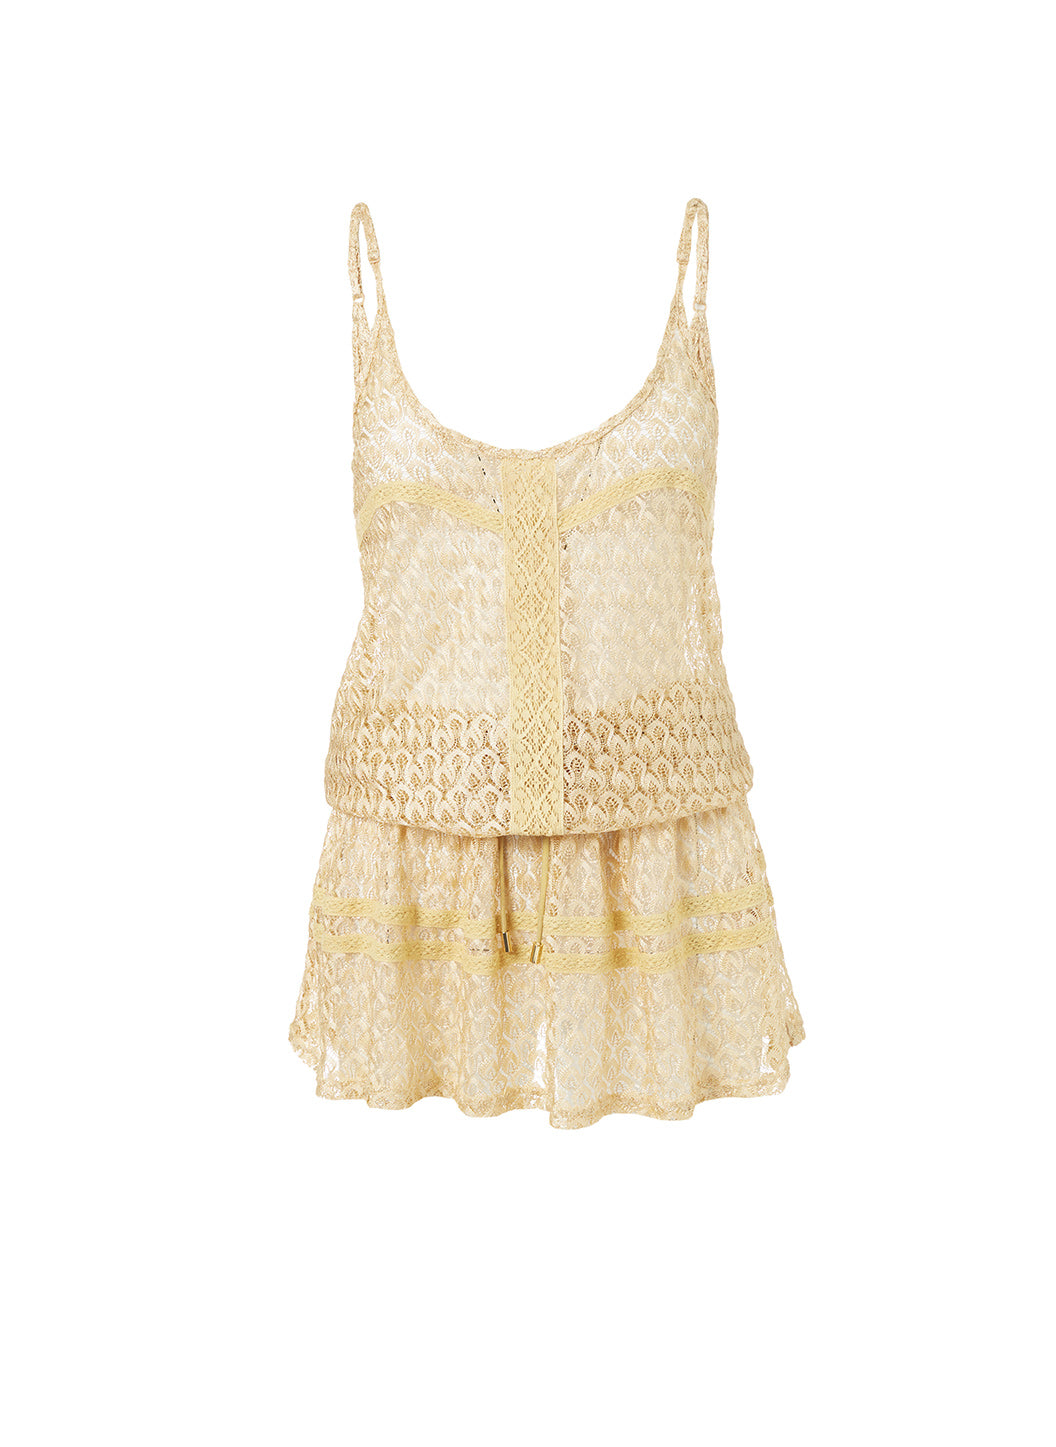 Khloe Gold Knit Over The Shoulder Dress - Melissa Odabash Beach Dresses